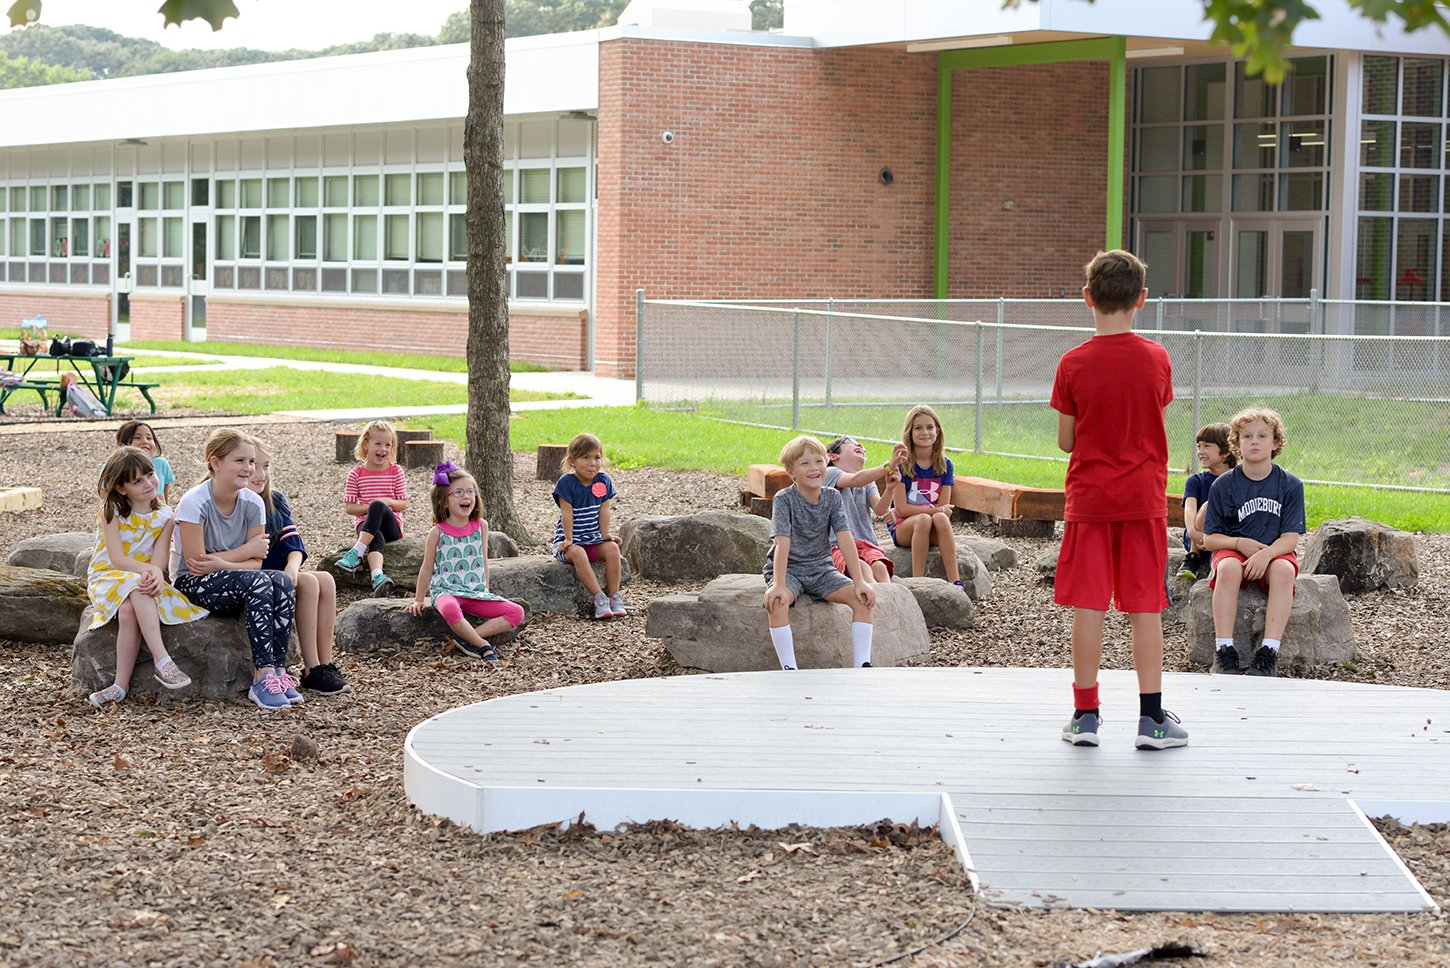 With the new nature space, kids can perform in front of a small audience, walk along a balance beam, investigate nature or read a book outside.